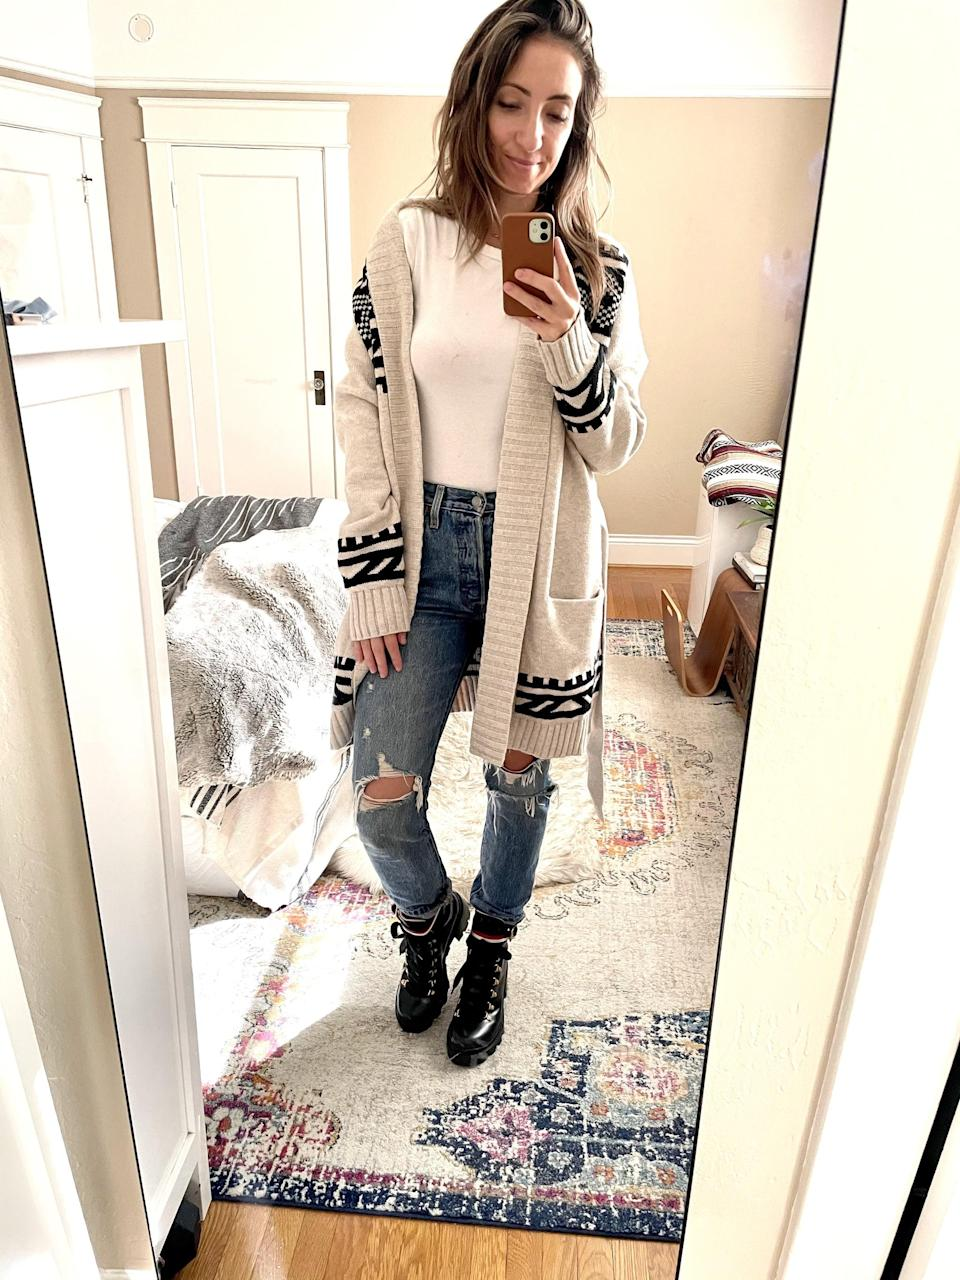 "<p><strong>The item:</strong> <span>Cozy Fair Isle Tie-Belt Cardigan Sweater</span> ($42, originally $55)</p> <p><strong>What our editor said:</strong> ""It's nice and big - perfect for staying warm. I wore it with medium-rinse ripped jeans, combat boots, and a simple white T-shirt tucked in. The sweater is the standout piece of this look, so I didn't want anything to compete with it."" - RB</p> <p>If you want to read more, here is the <a href=""https://www.popsugar.com/fashion/old-navy-cardigan-sweater-review-48009561"" class=""link rapid-noclick-resp"" rel=""nofollow noopener"" target=""_blank"" data-ylk=""slk:complete review"">complete review</a>.</p>"